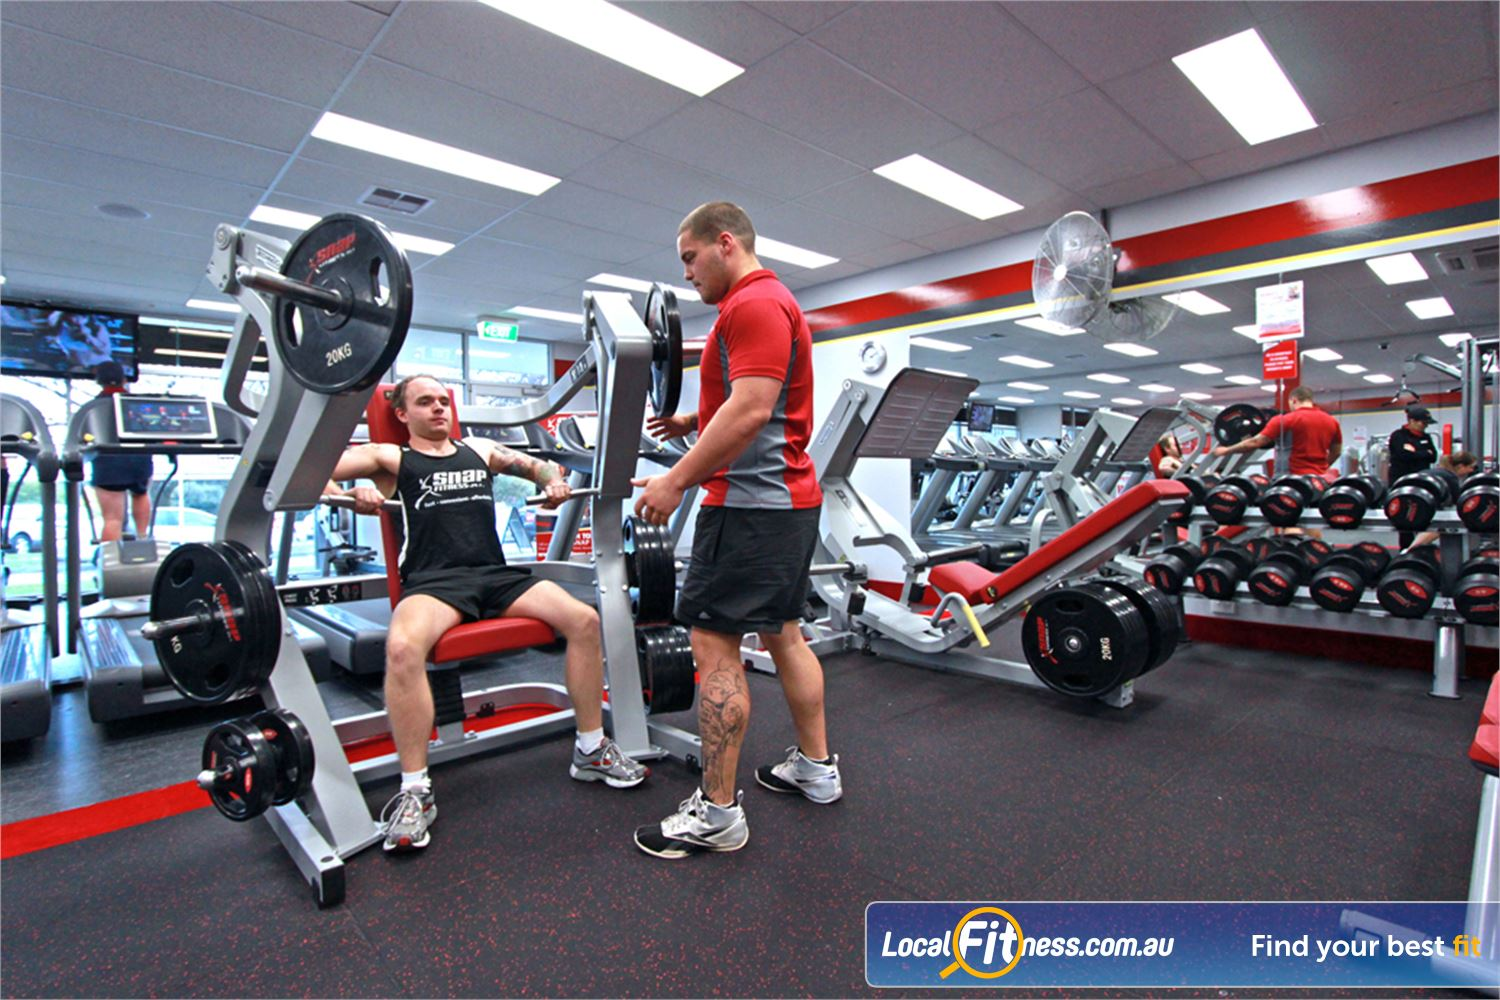 Snap Fitness Near Middle Park Get strong with heavy duty plate loading equipment.